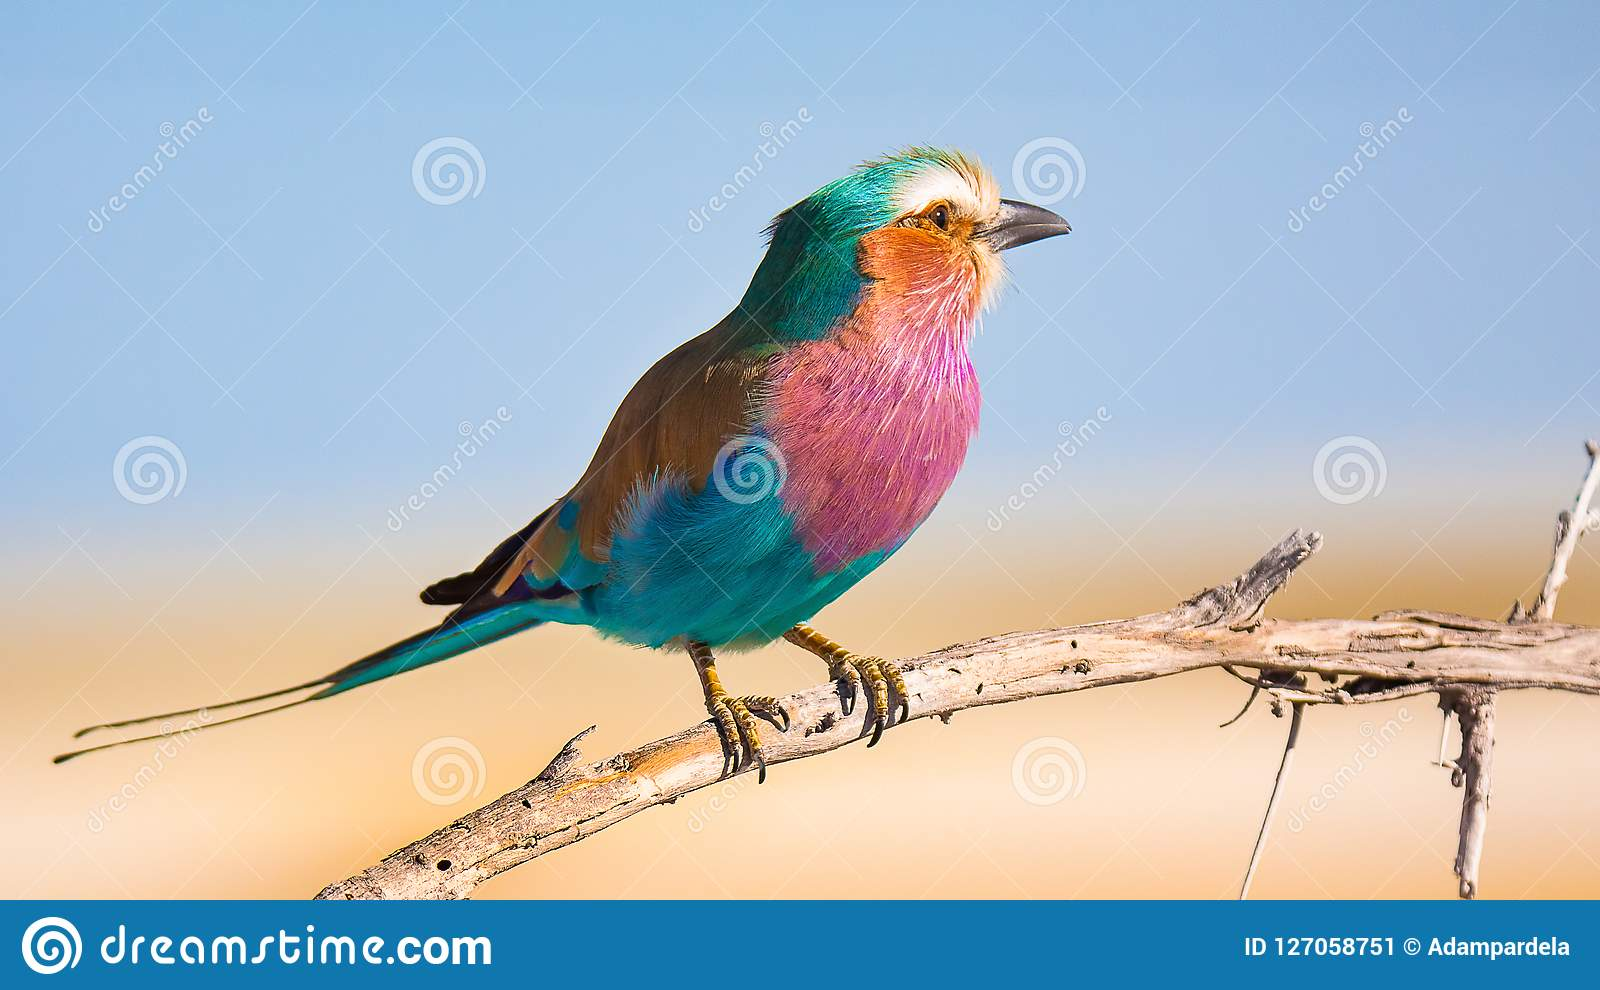 Africa Bird - Lilac breasted roller colorful bird standing on the tree branch in Namibia